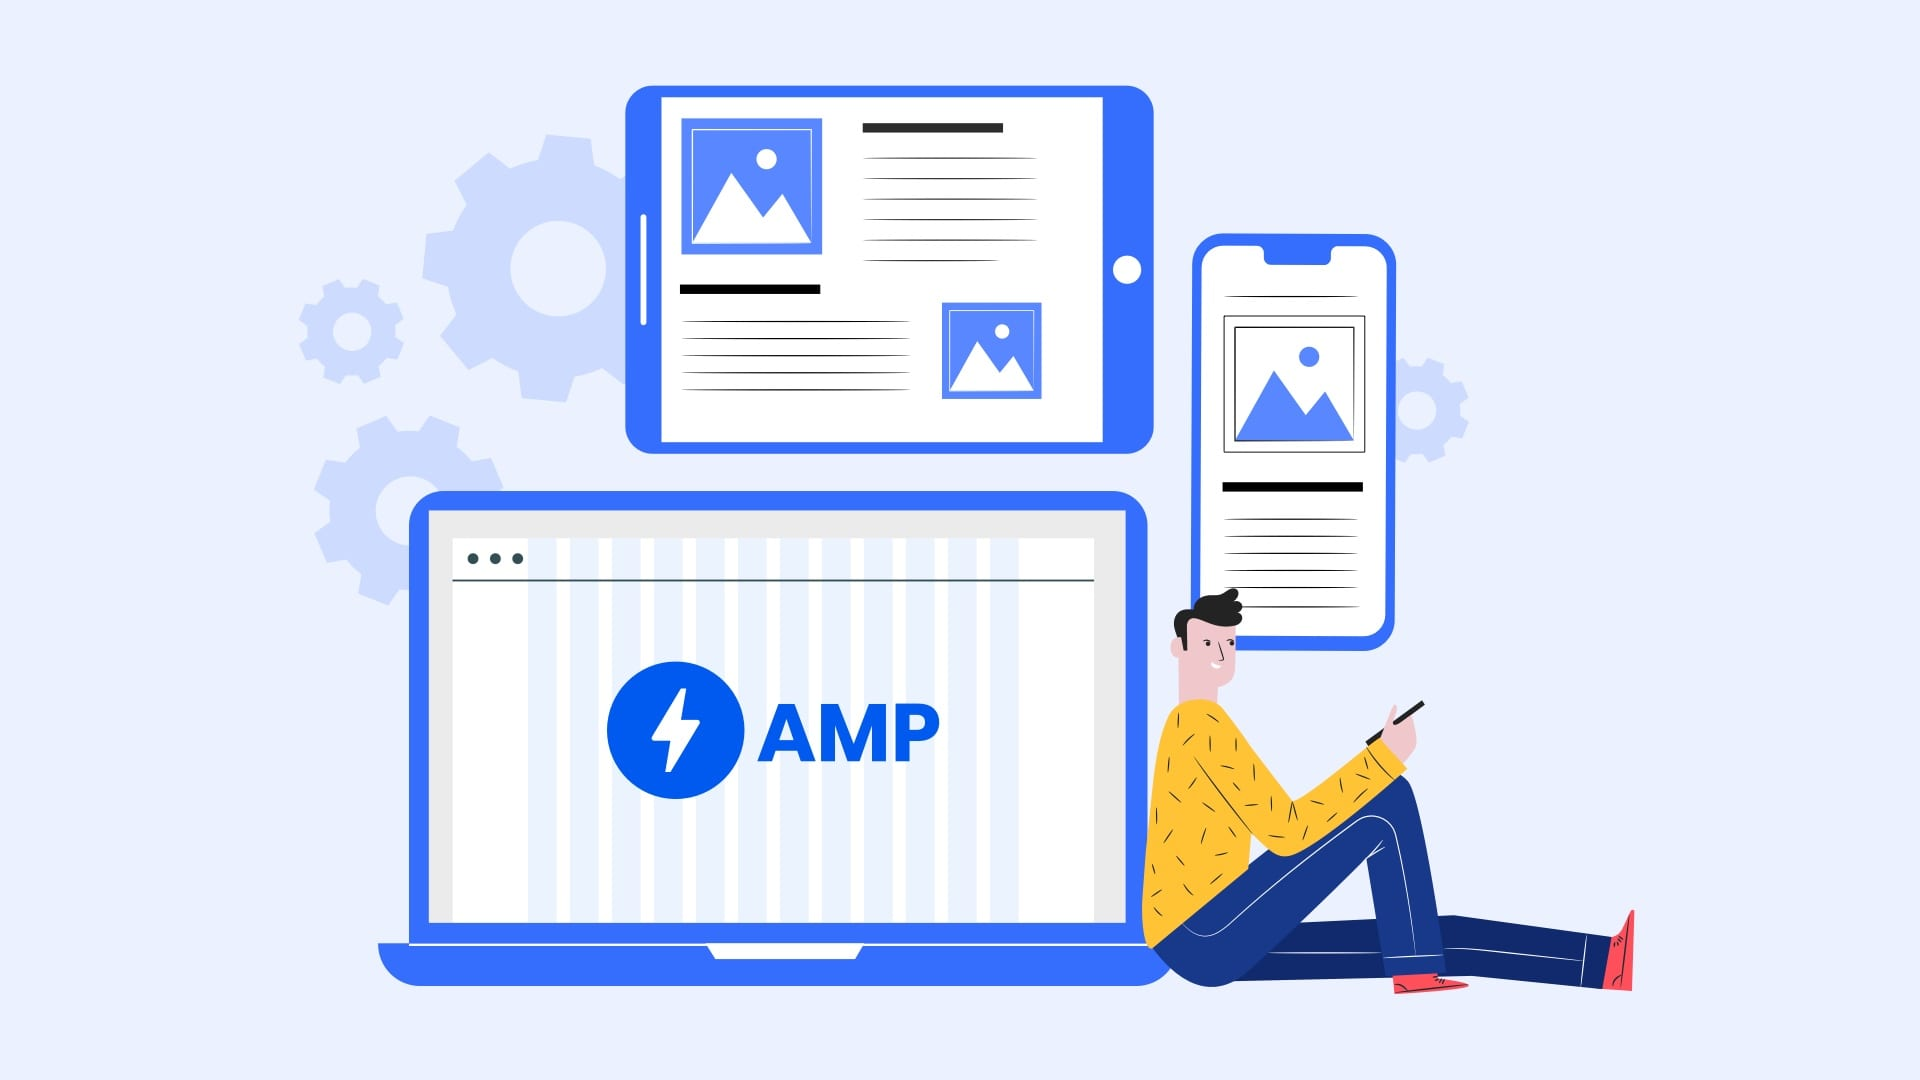 How to add bootstrap grid in AMP?